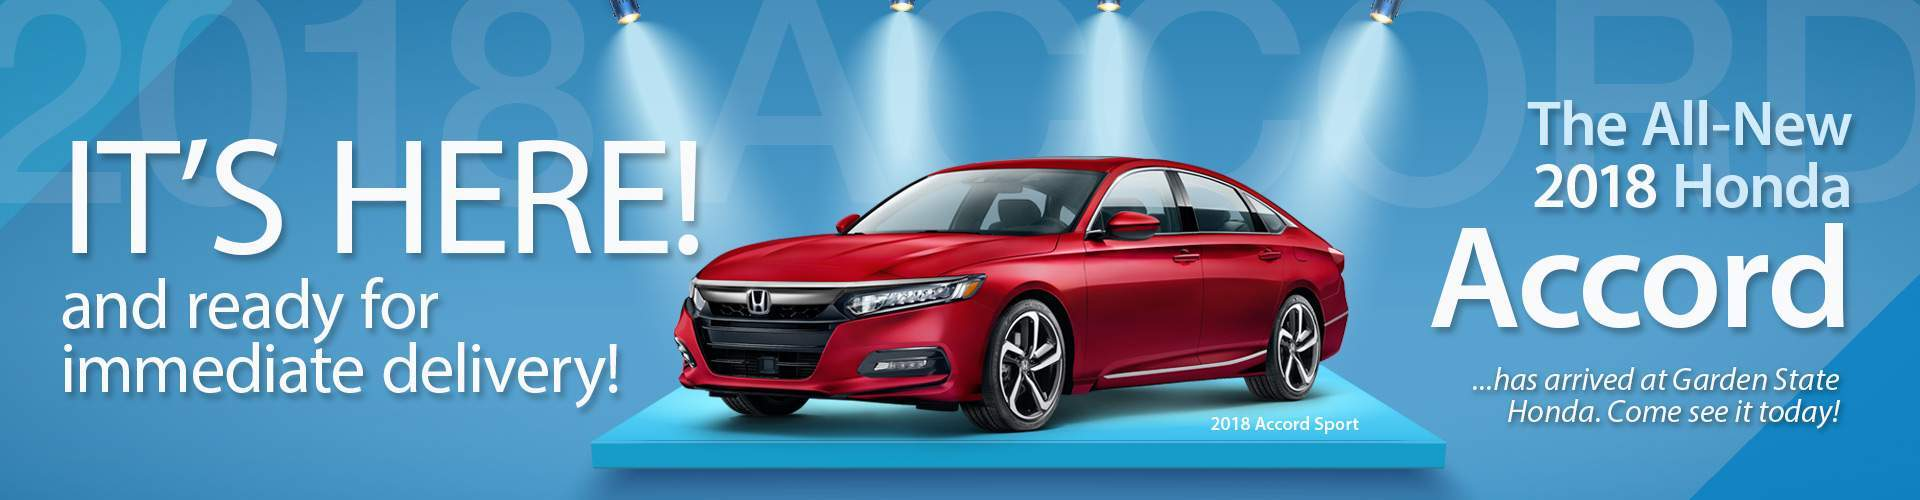 All-New 2018 Honda Accord